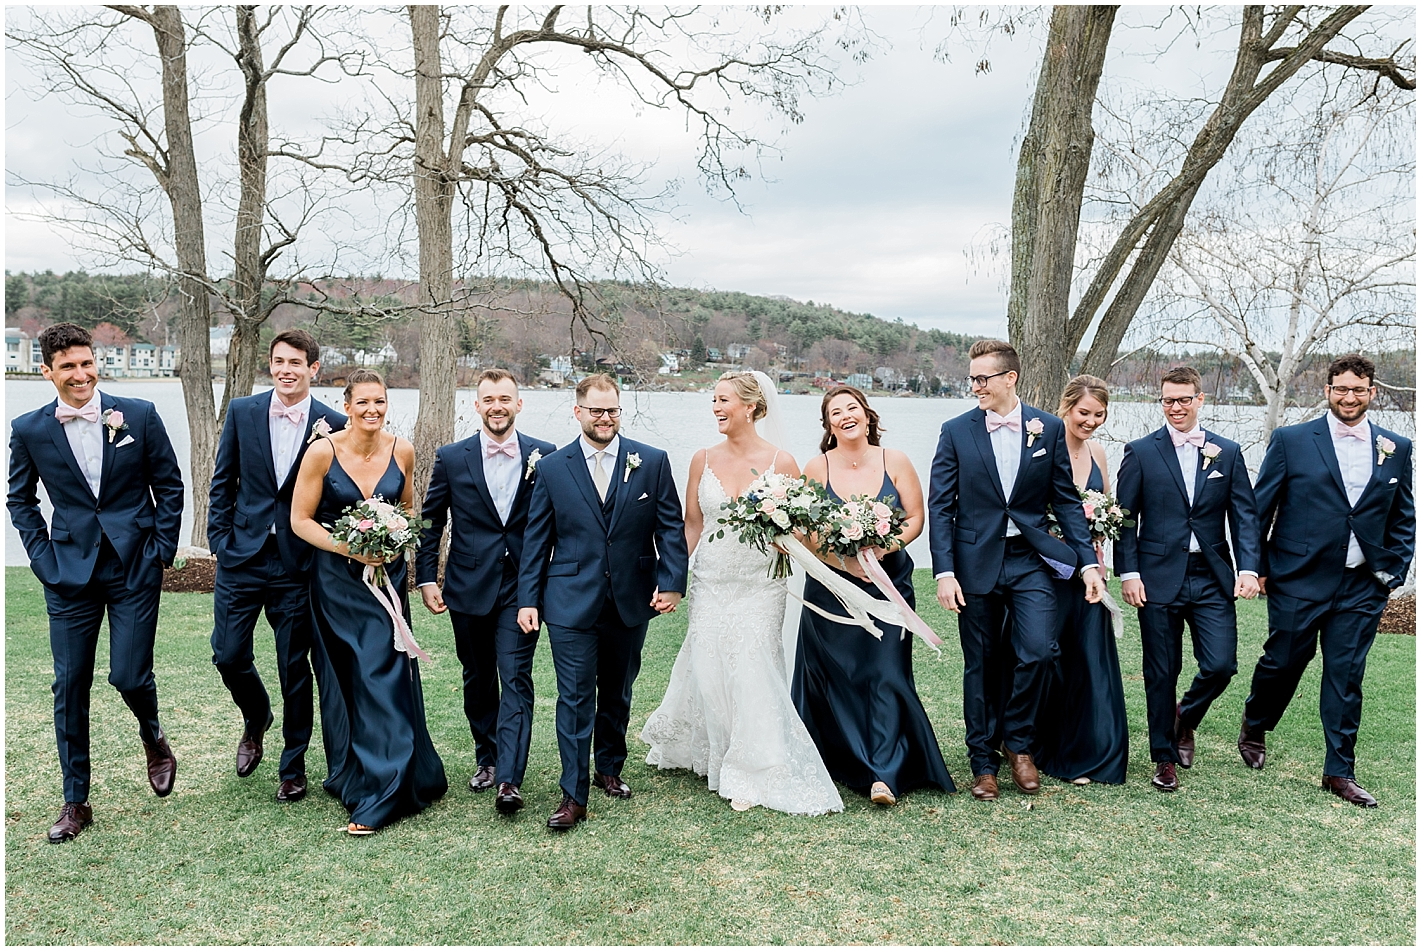 Candid Bridal Party Photos by Alyssa Parker Photography